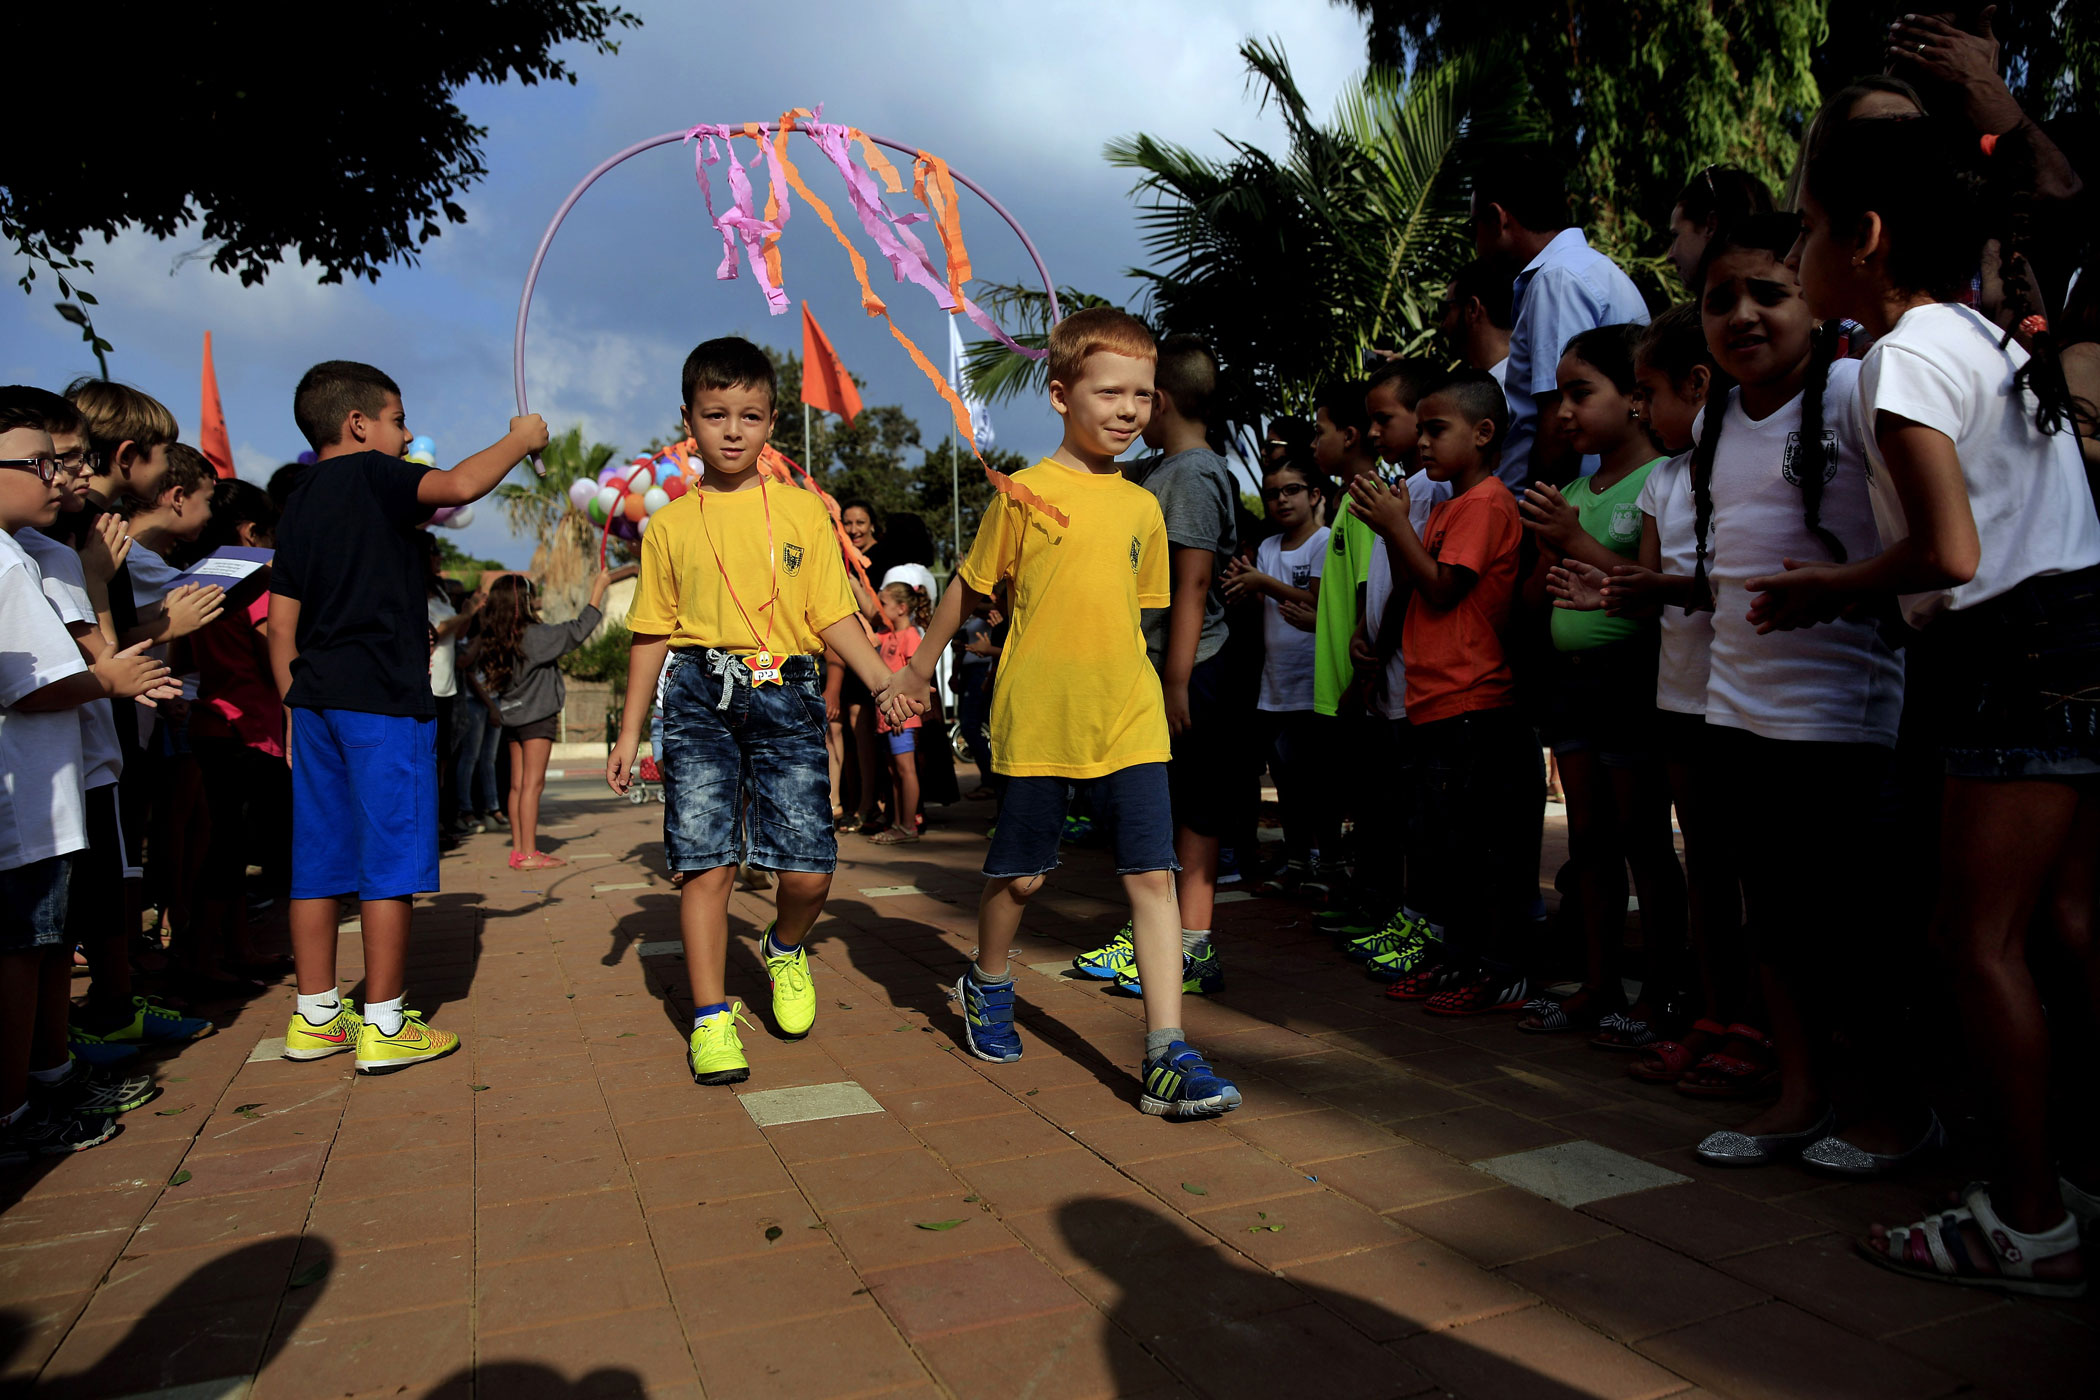 Children hold hands during the first day of school in the costal city of Ashkelon, Israel on Sept. 1, 2014.